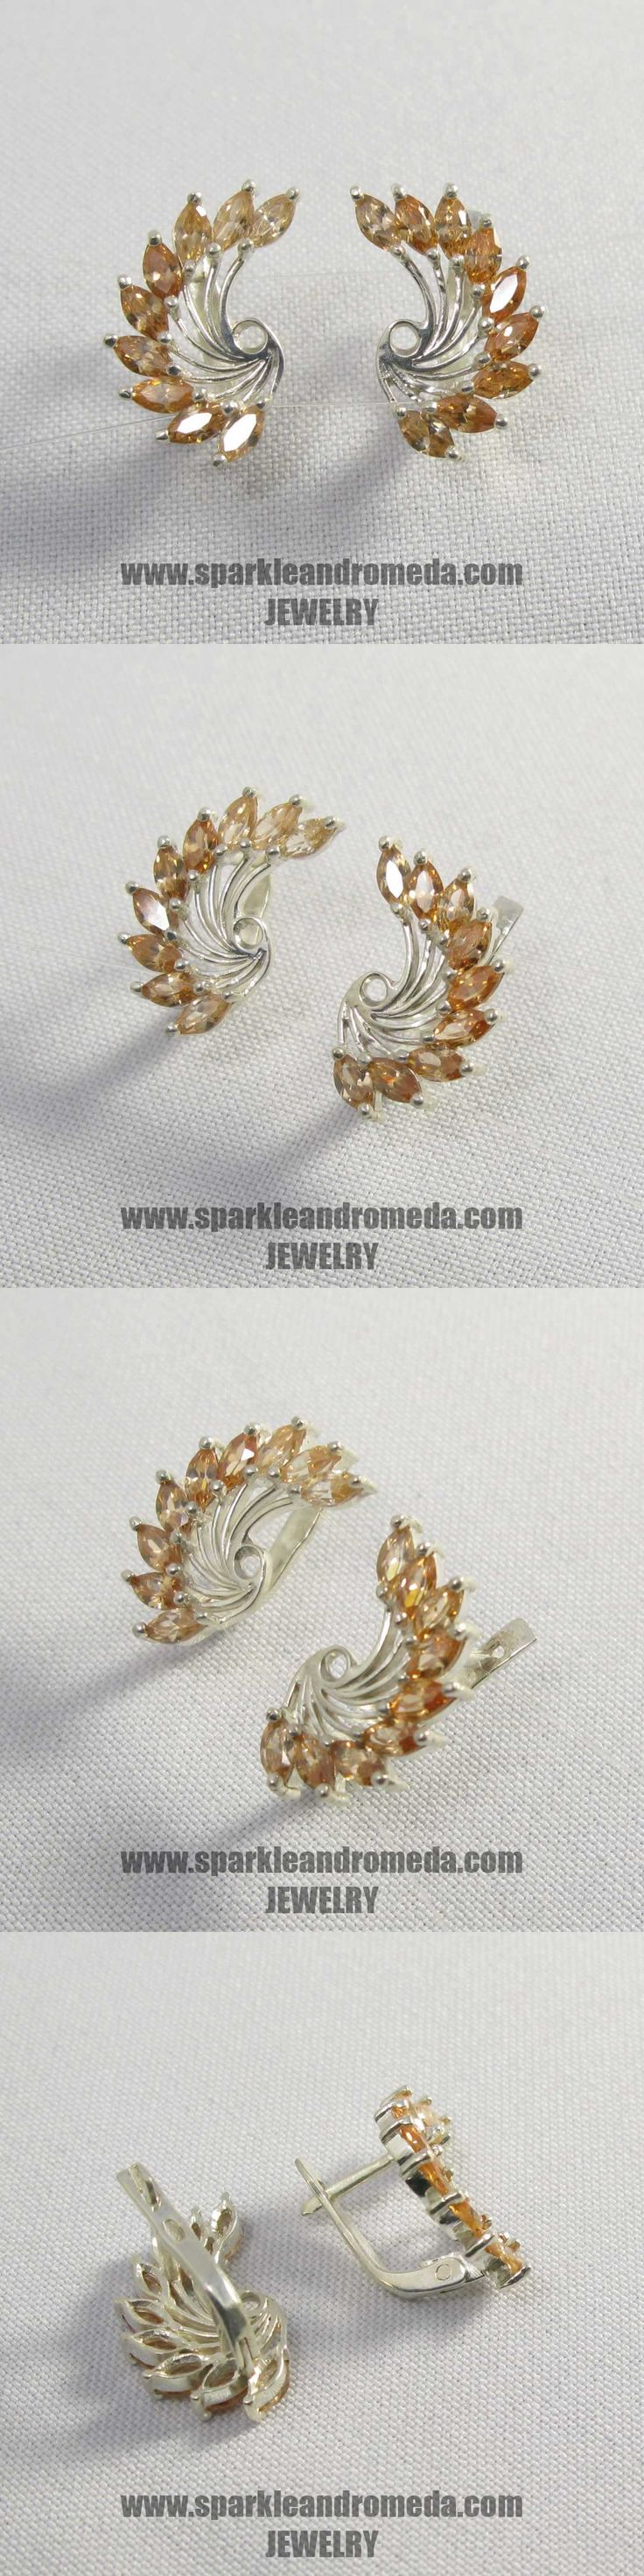 Sterling 925 silver earrings with 18 marquise 5×2,5 mm champagne diamond color cubic zirconia gemstones.